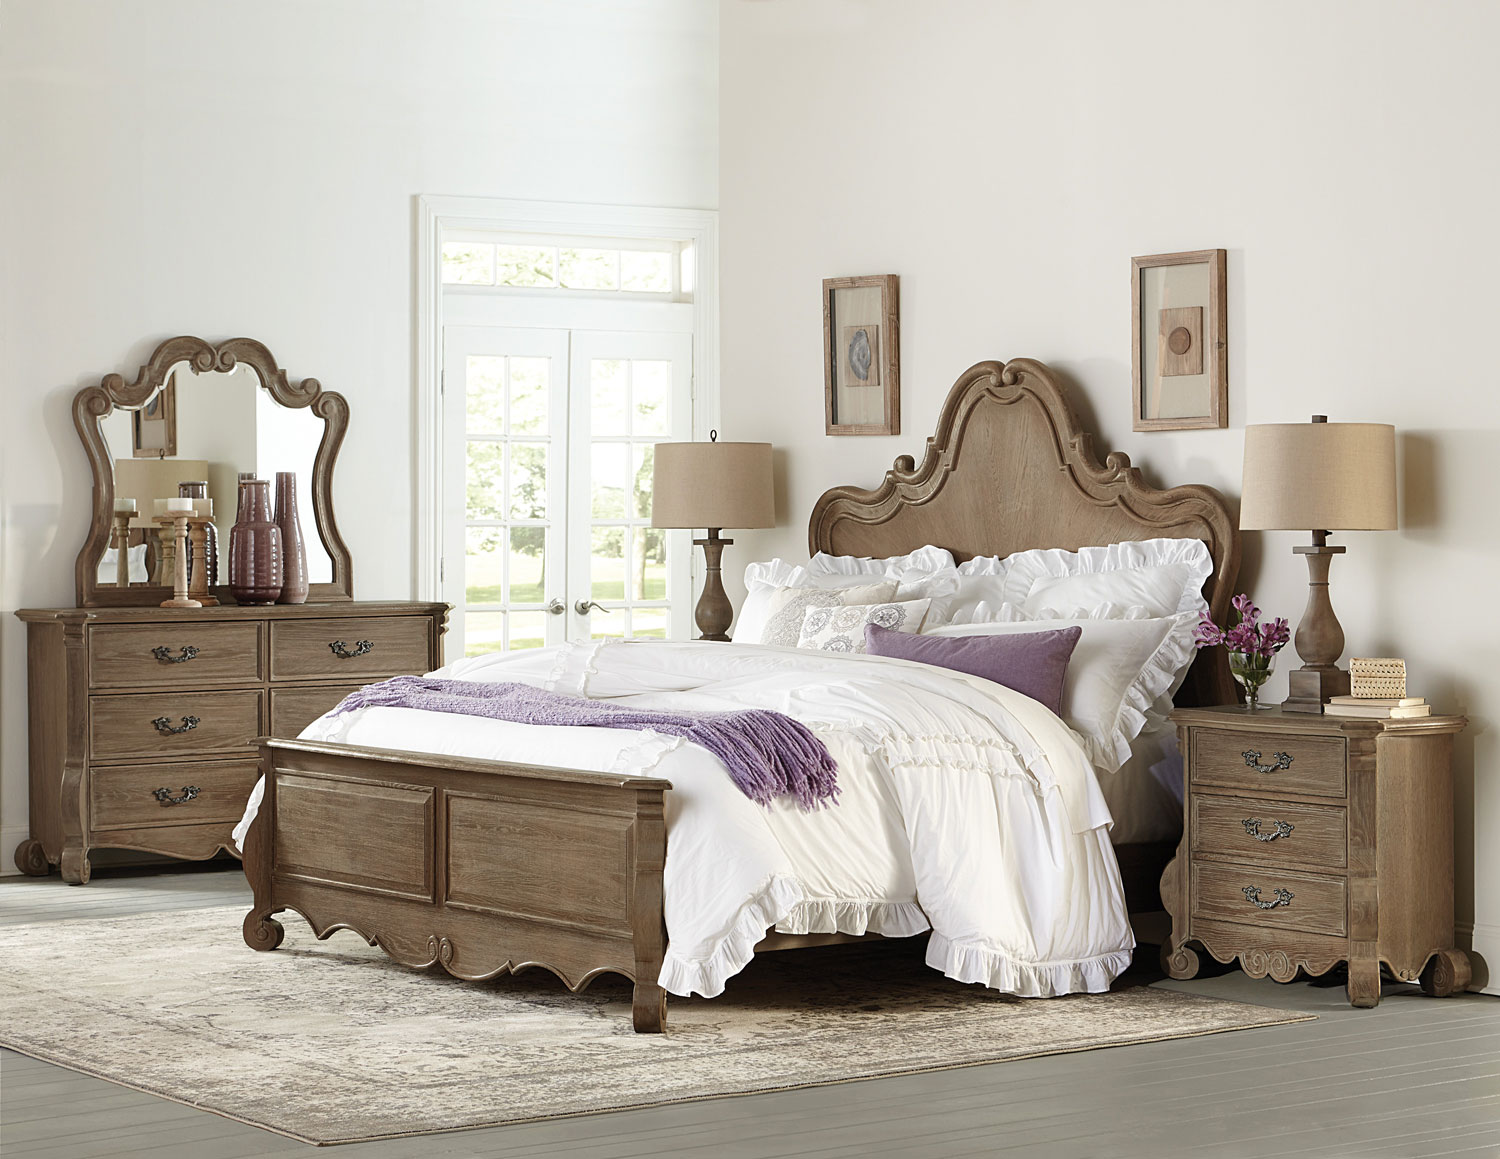 Homelegance Chrysanthe Bedroom Set - Oak